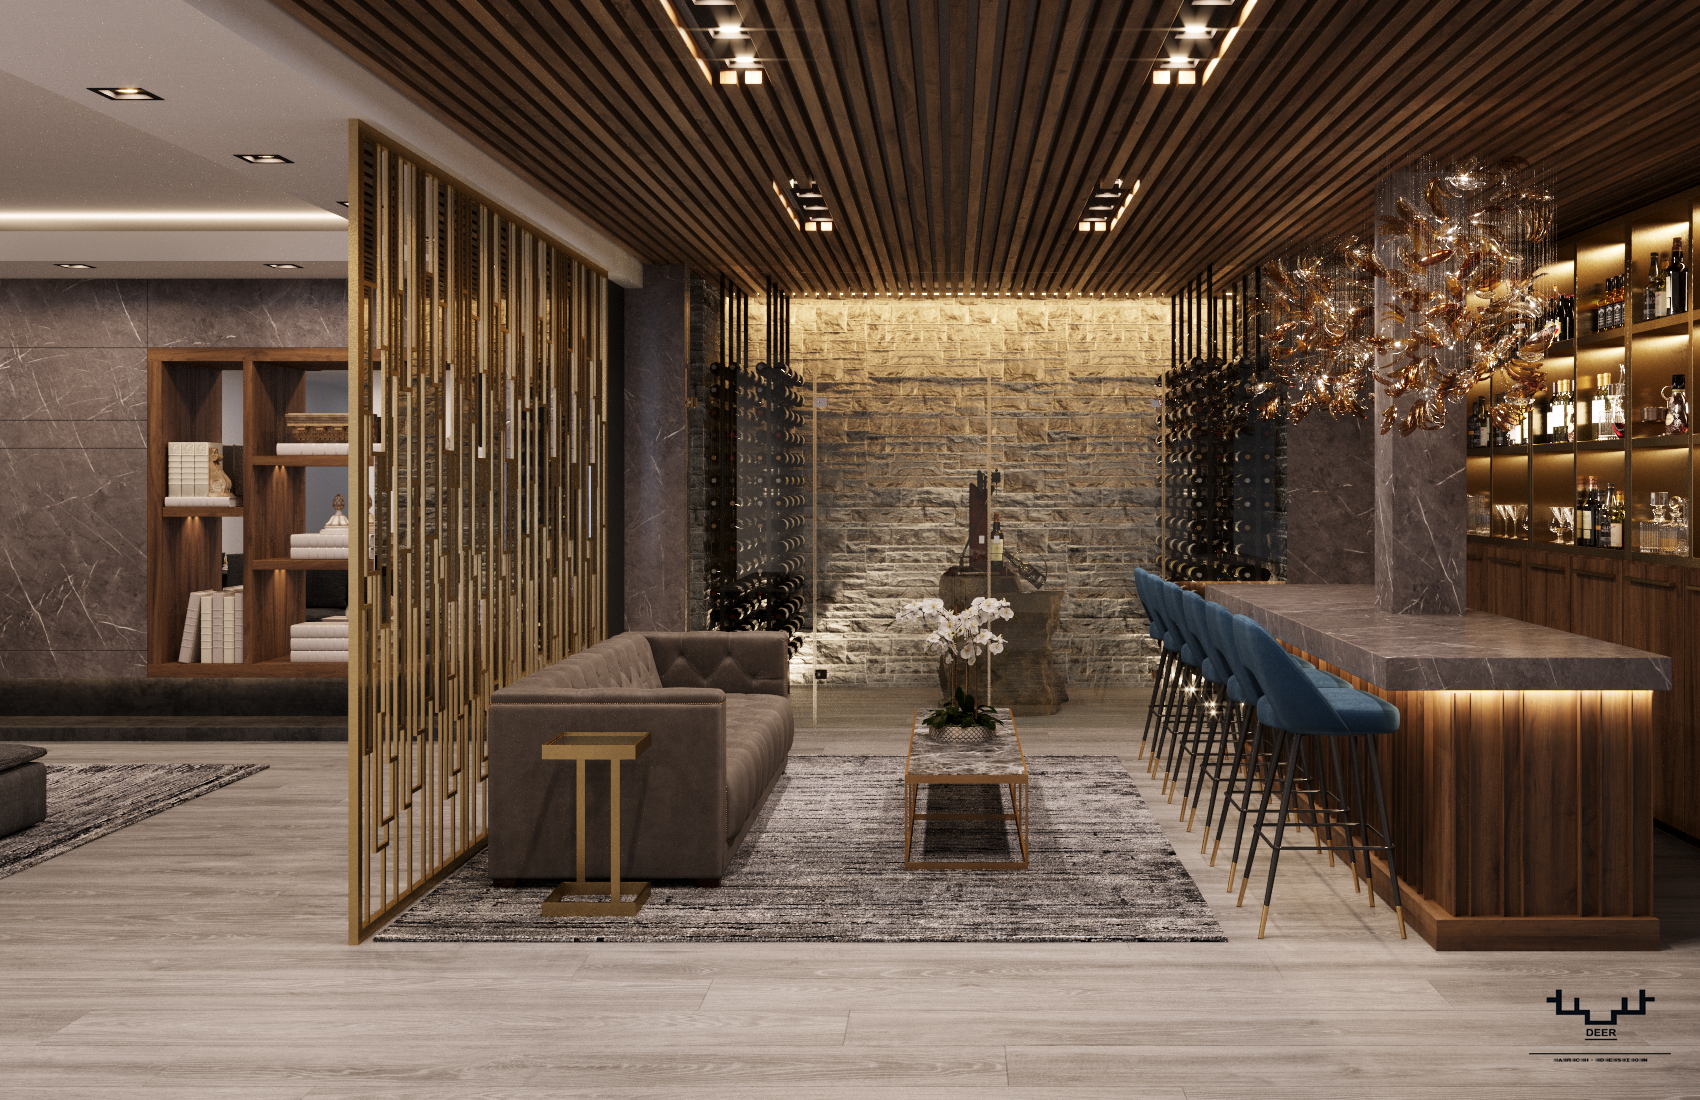 Luxurious Residential Interior Archviz Render